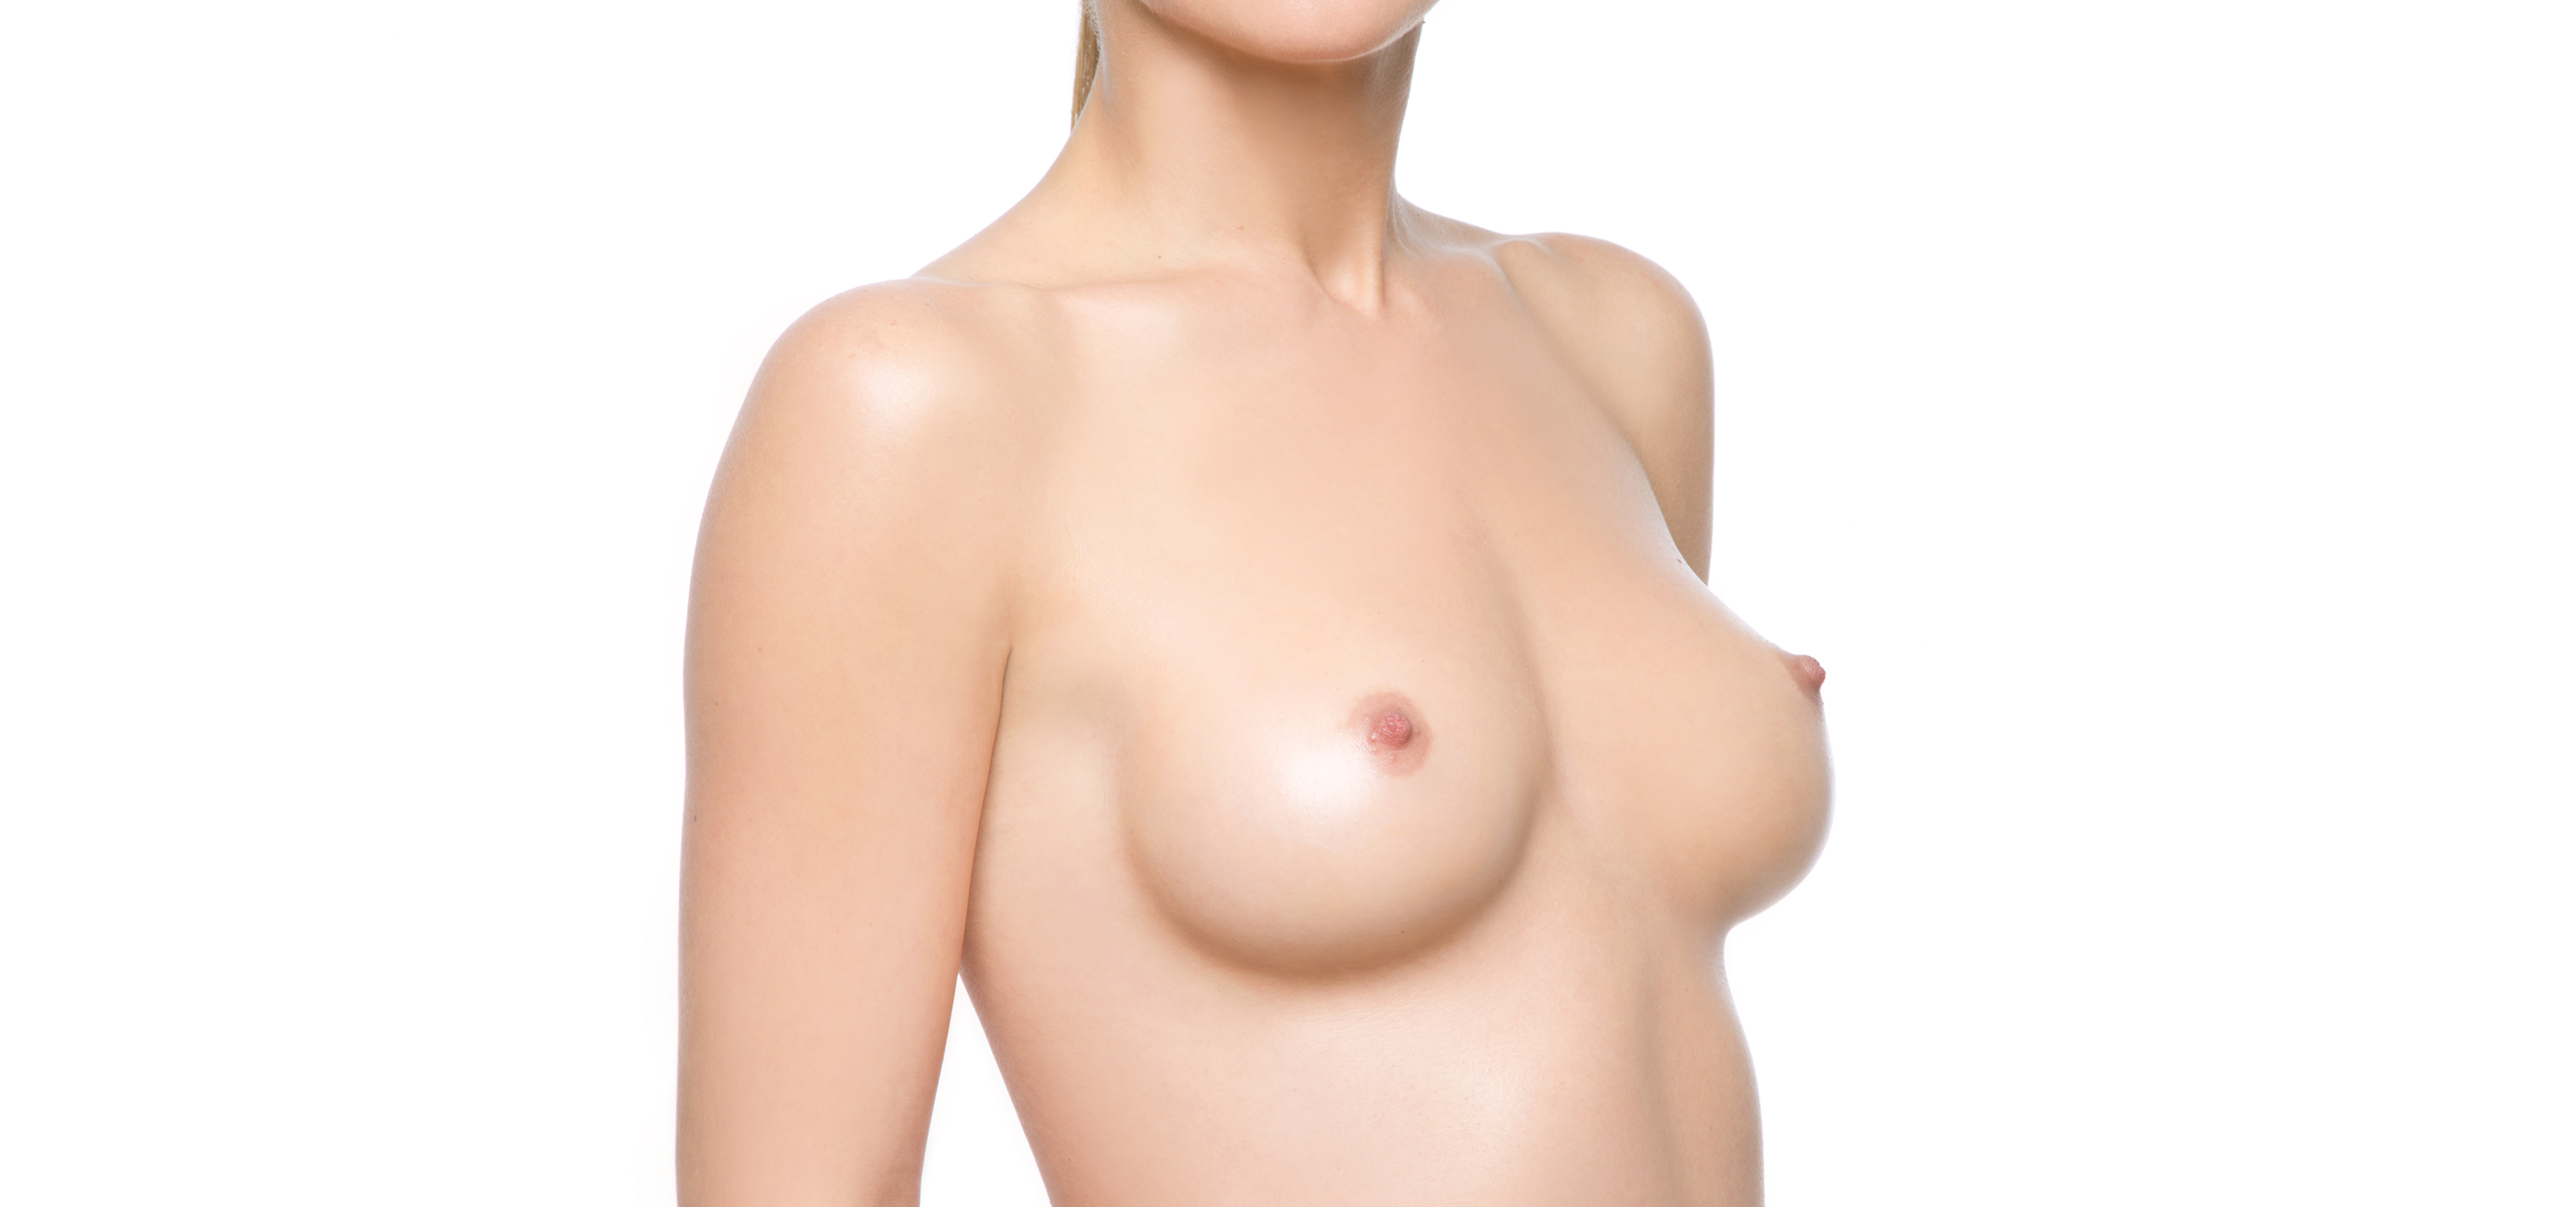 Fat transfer into the breasts using Vaser Lipo technology